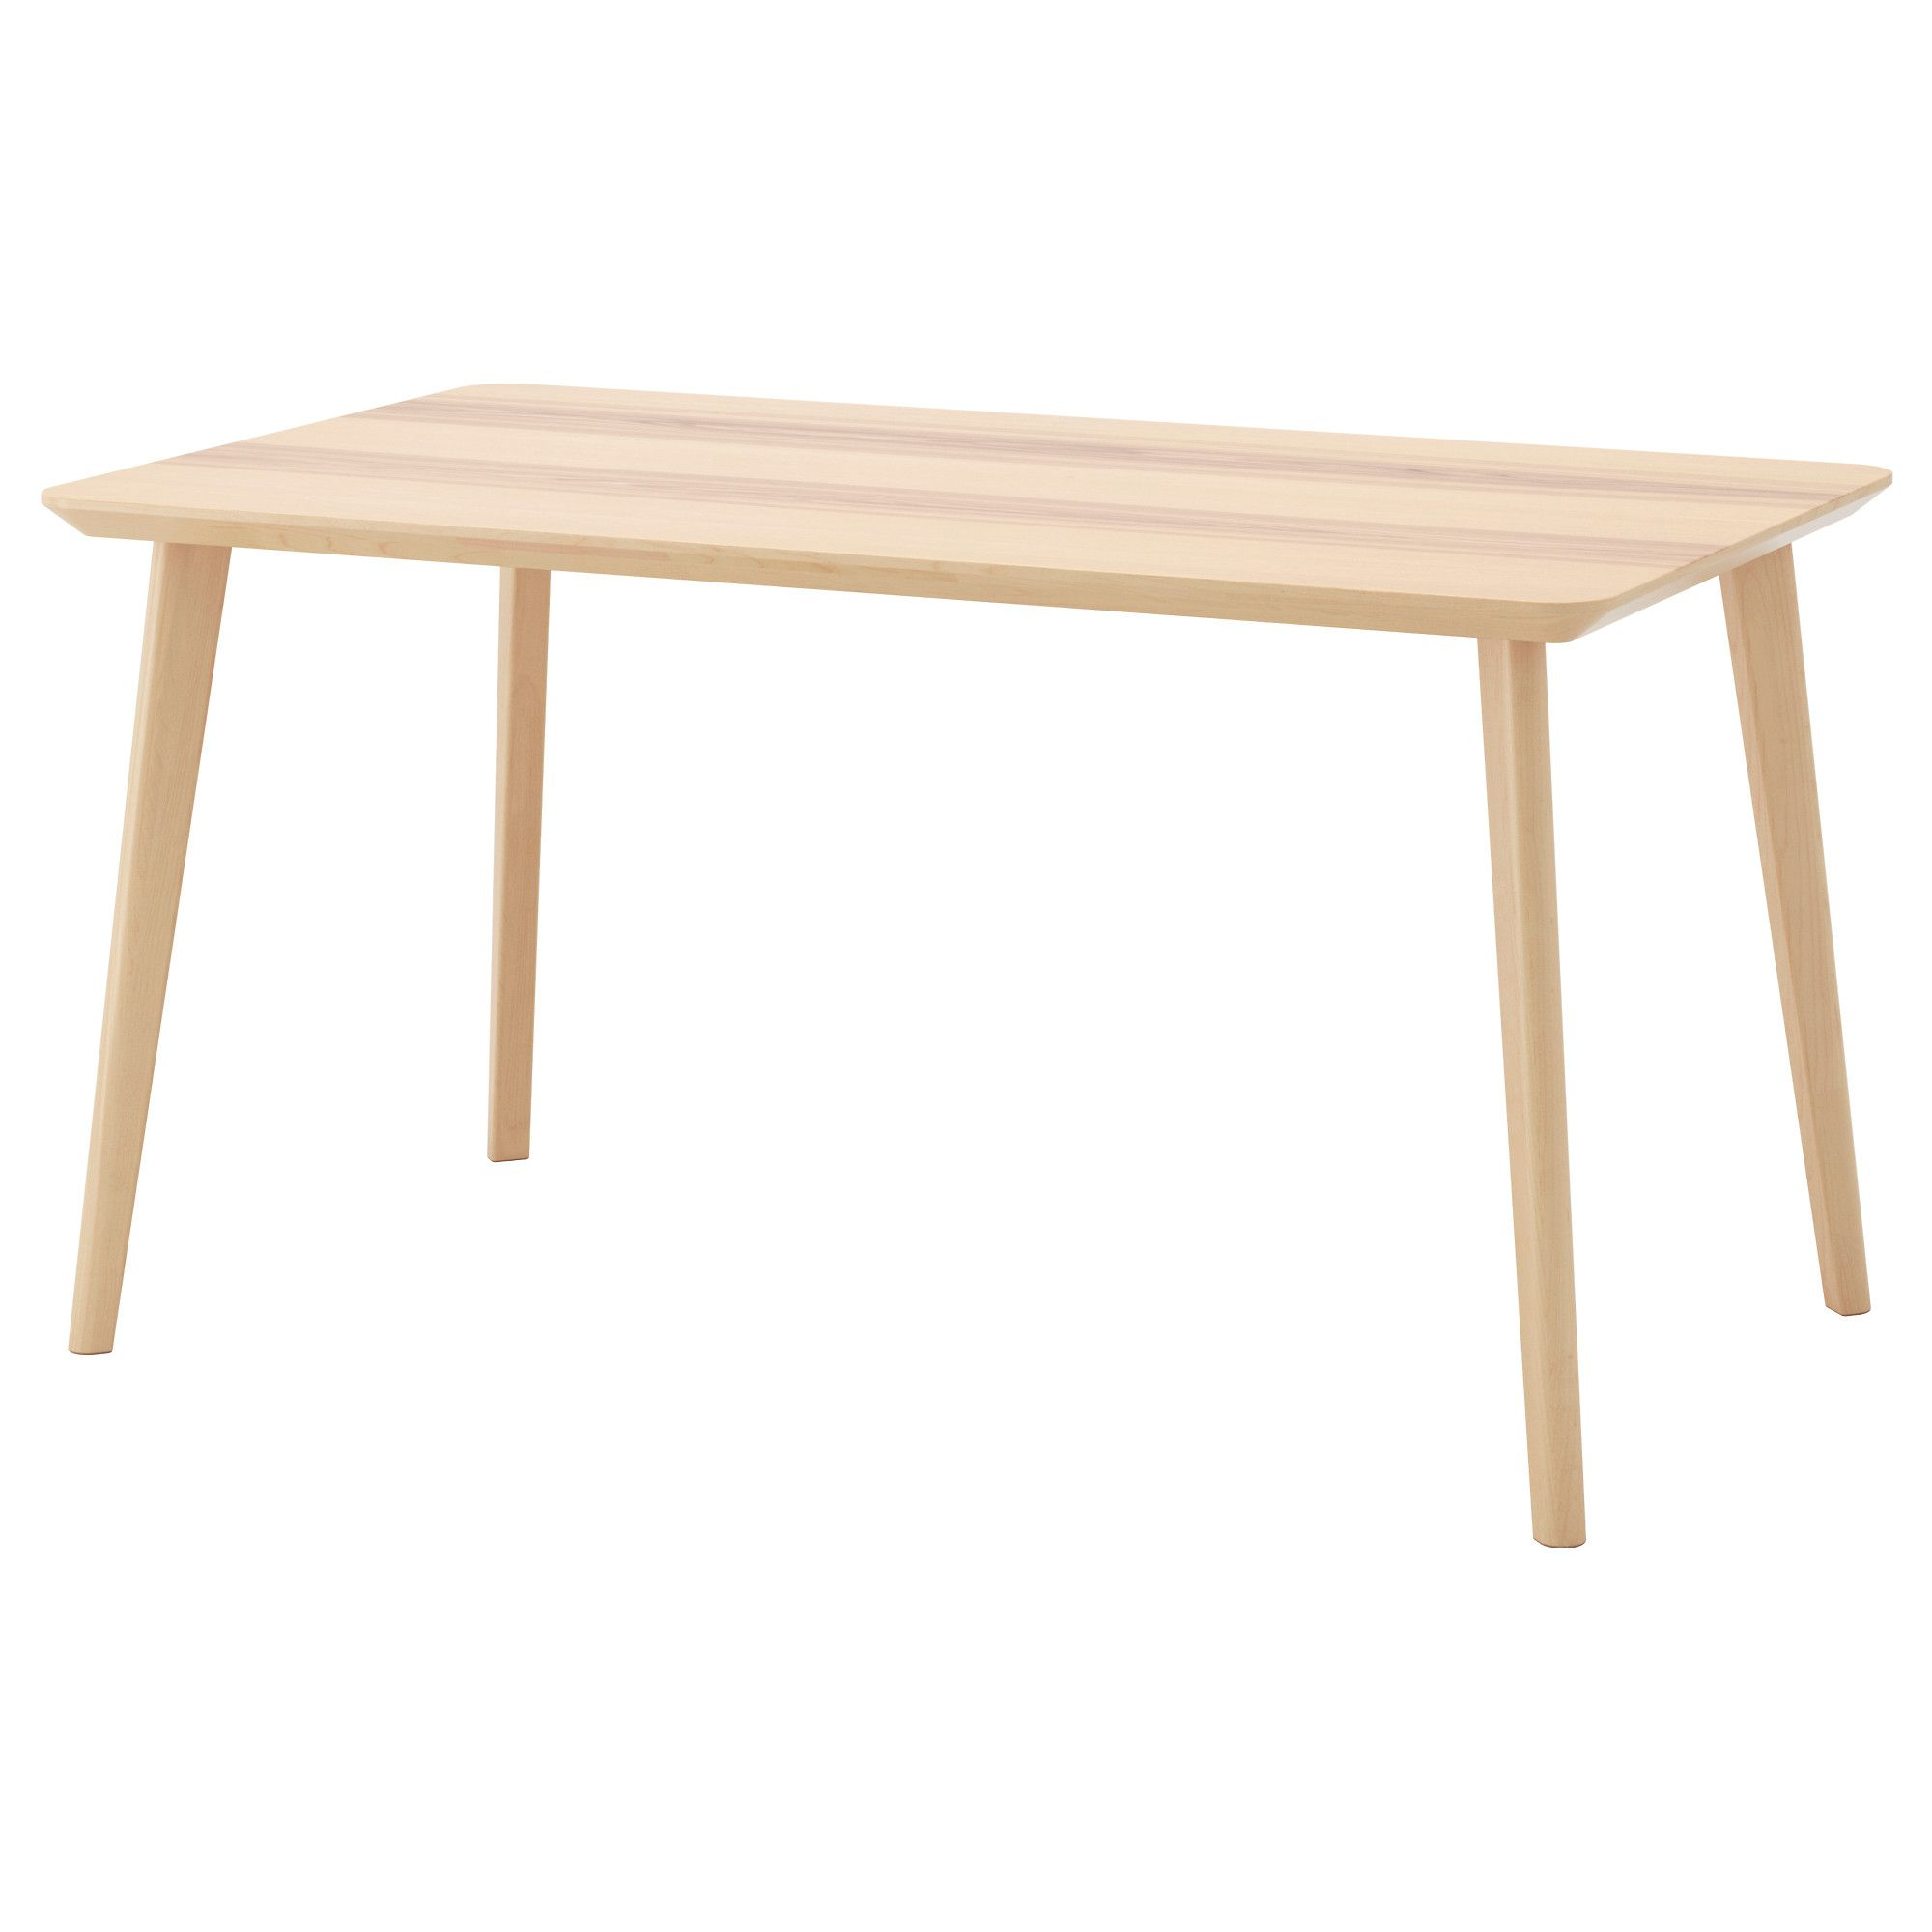 LISABO Table, ash veneer. Ikea DecorFurniture ...